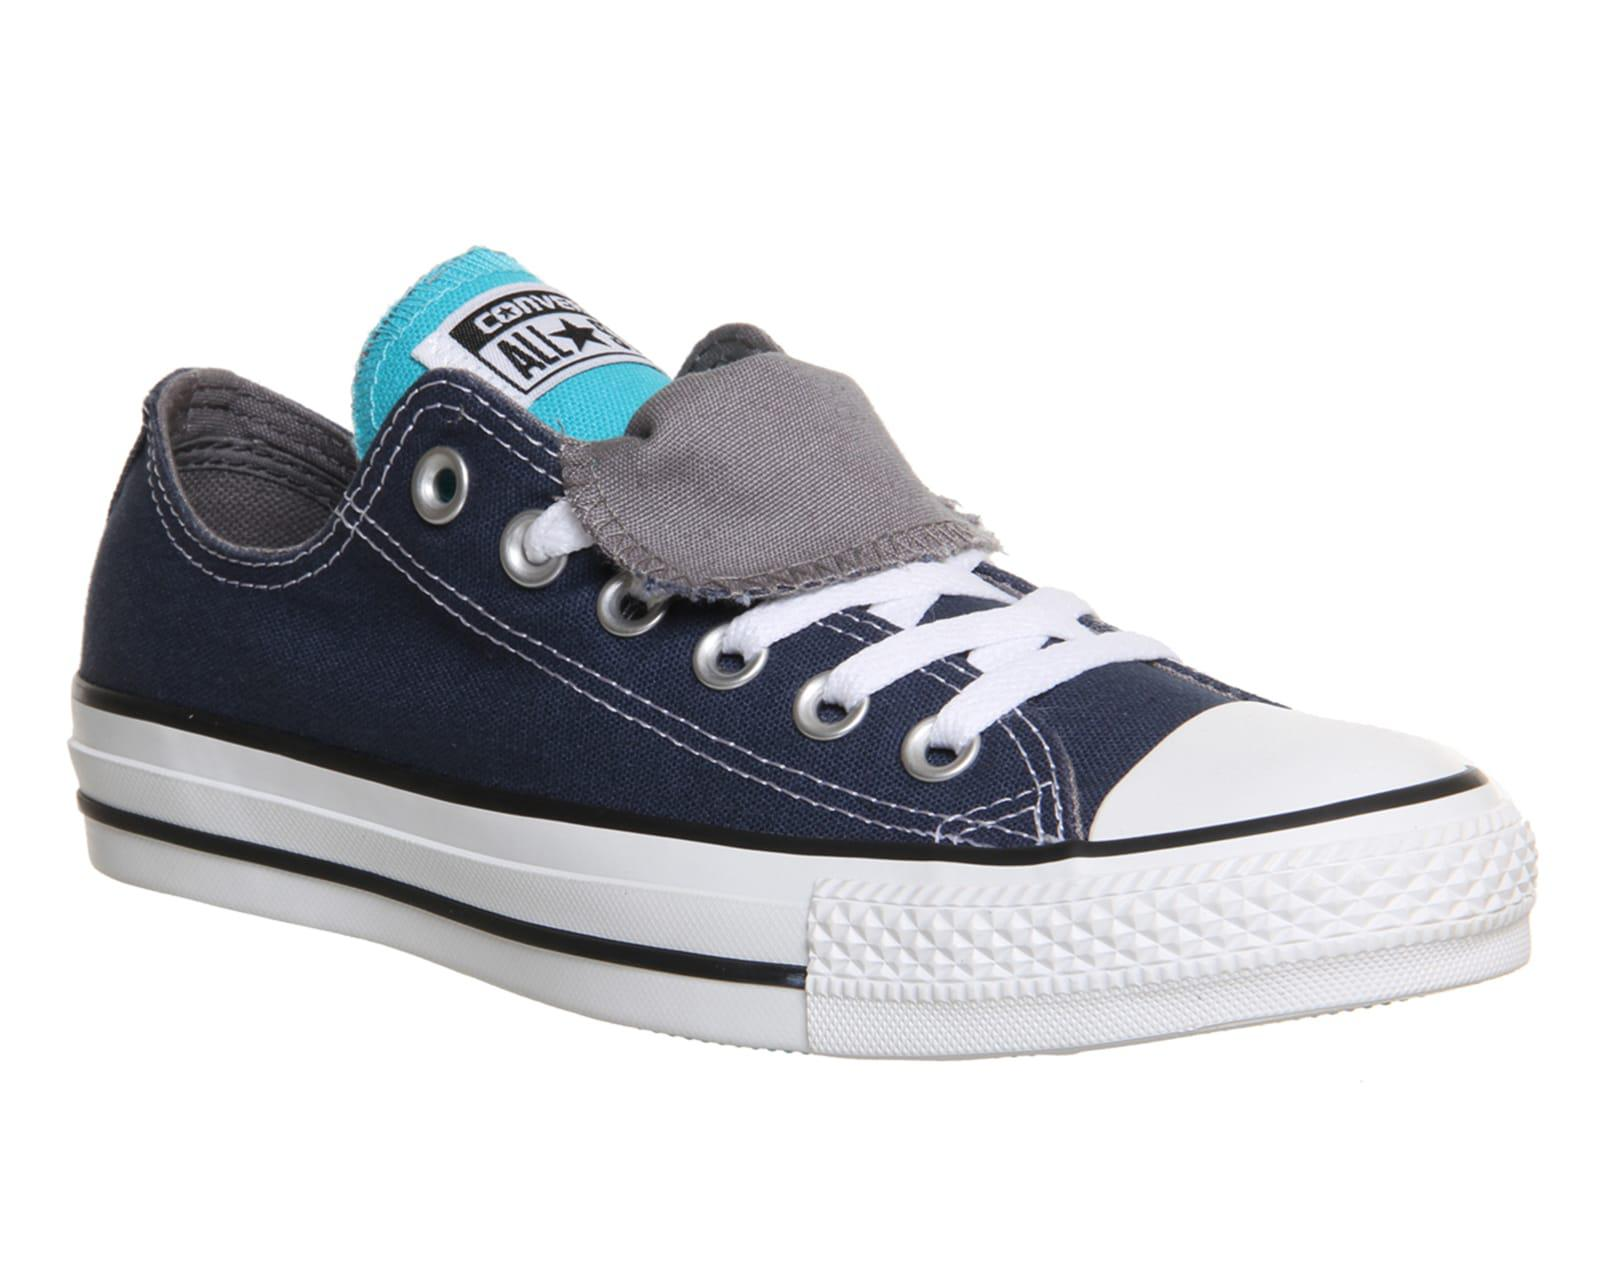 Converse Allstar Low Double Tongue Shoes